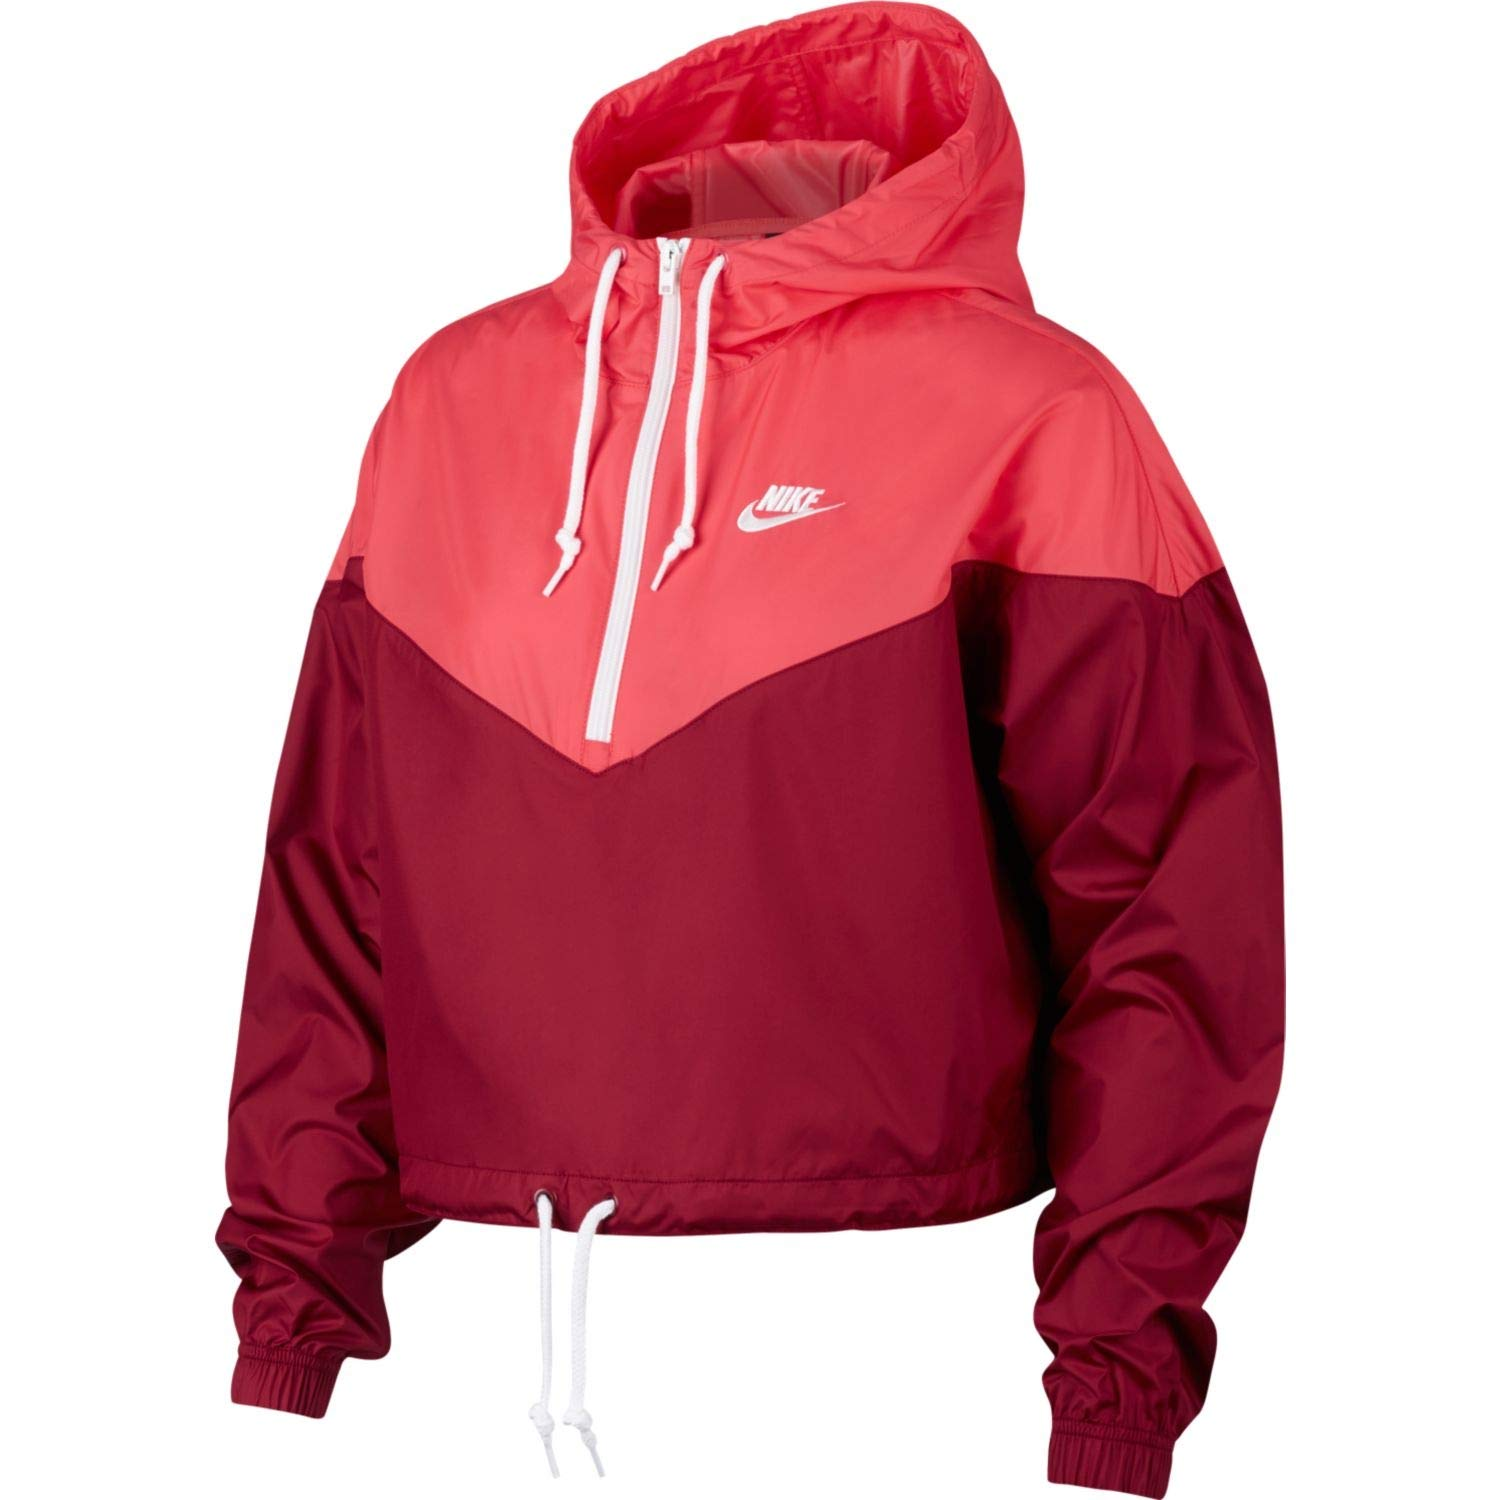 Nike Women\u0027s Half,Zip Adjustable Windbreaker, Team Red/Ember Glow/White